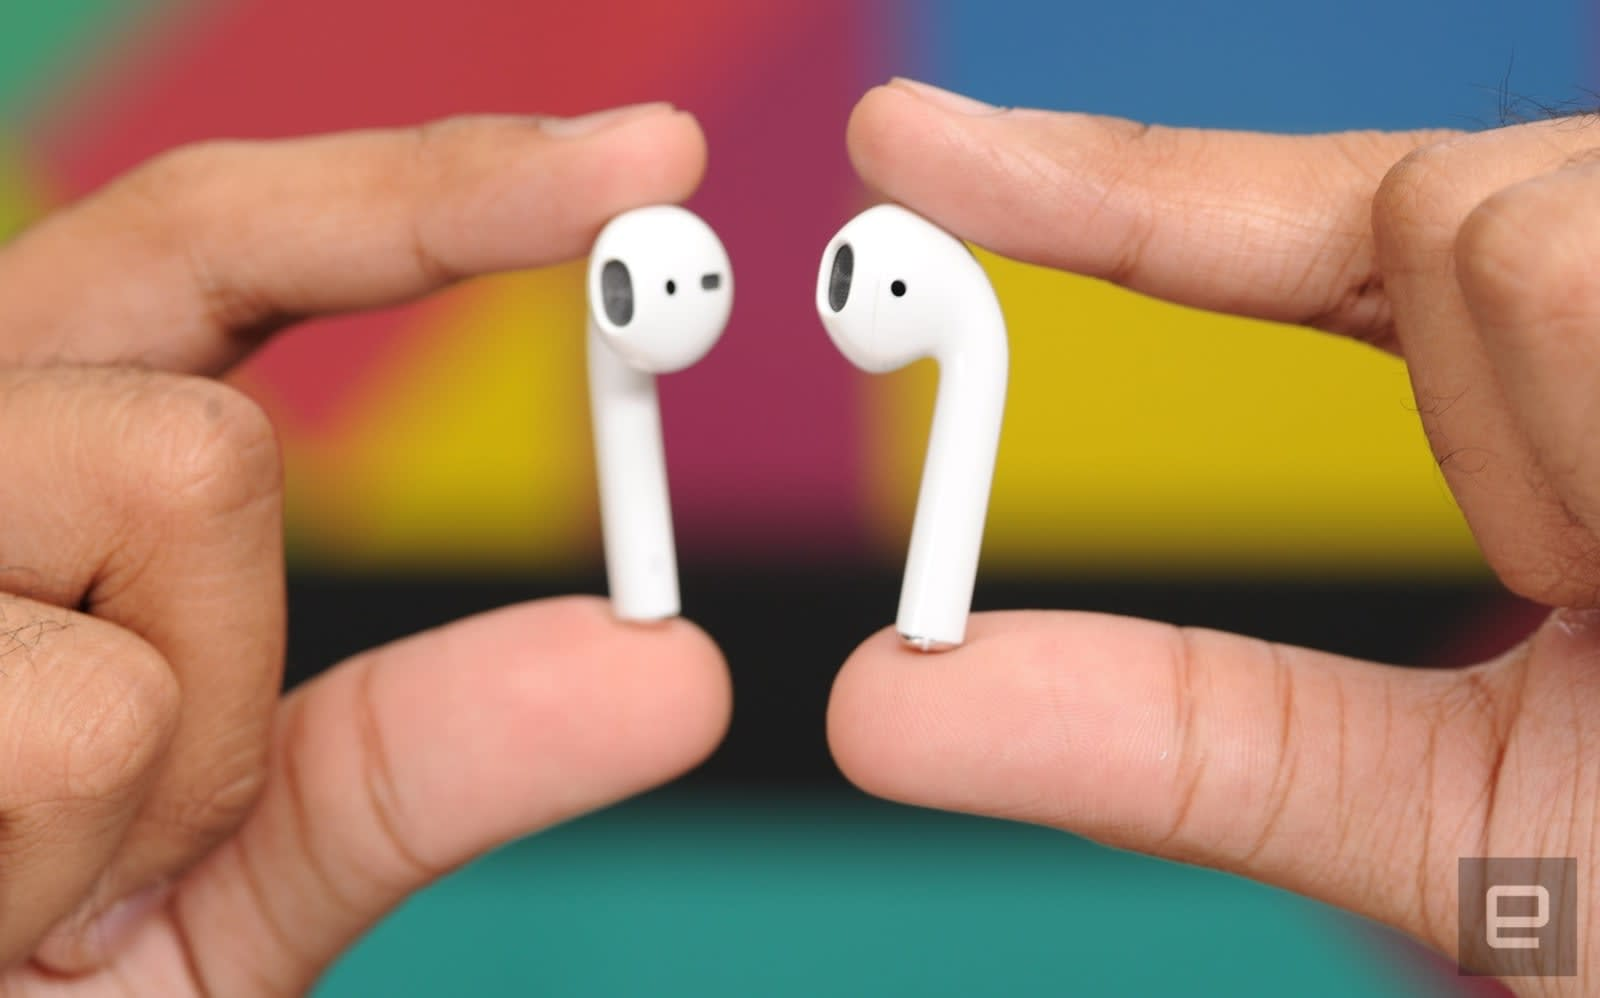 a19cc288c70 Apple AirPods are still the best-selling true wireless earbuds